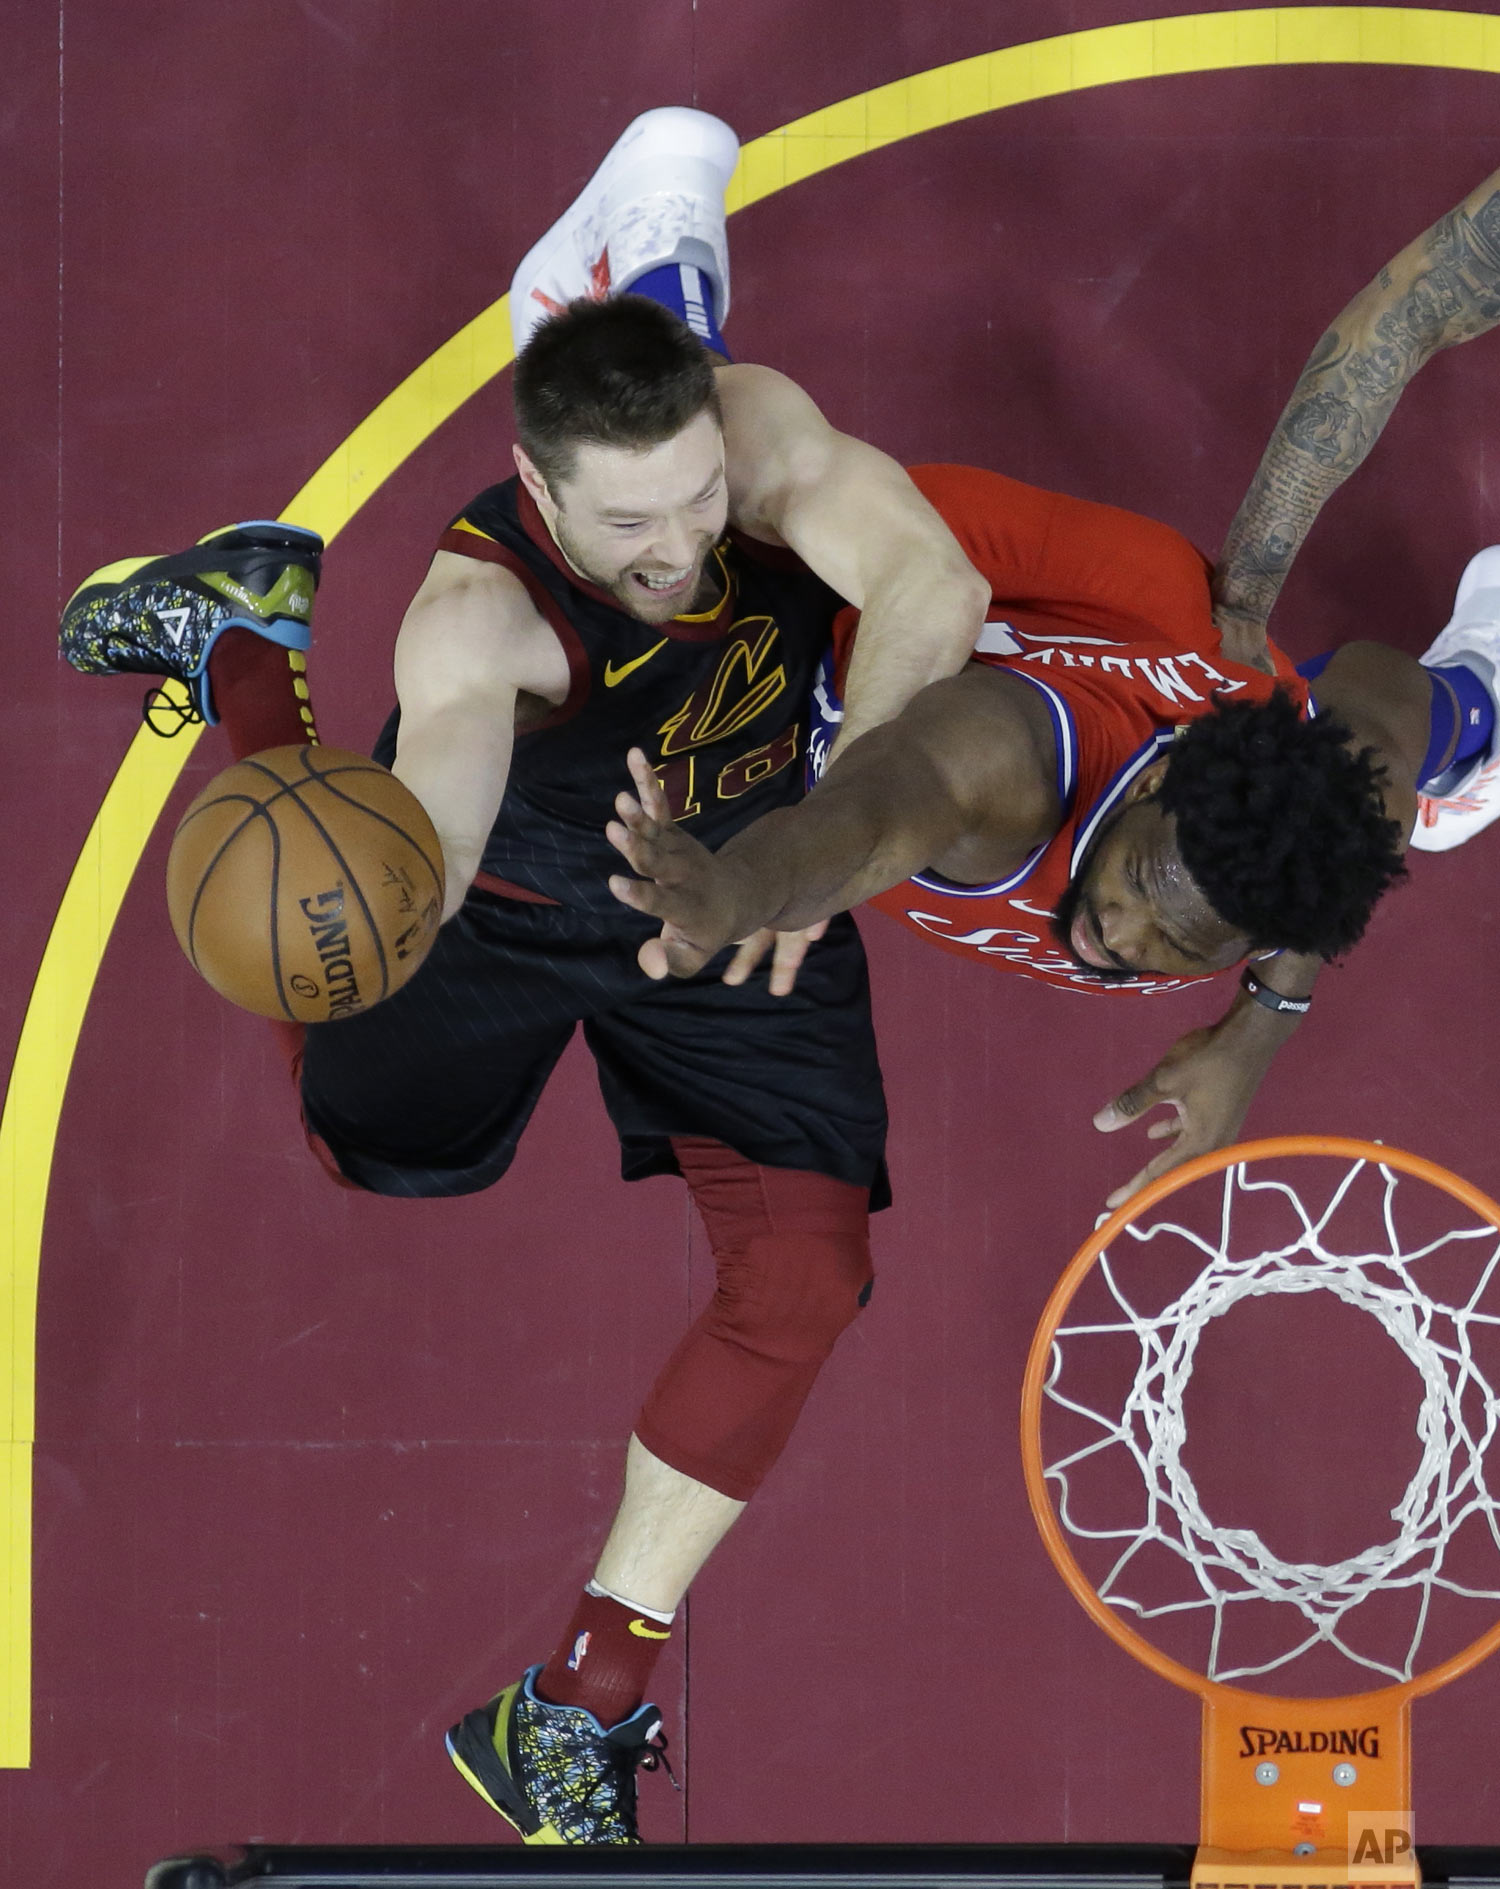 Cleveland Cavaliers' Matthew Dellavedova (18) shoots against Philadelphia 76ers' Joel Embiid (21), from Cameroon, during the first half of an NBA basketball game Sunday, Dec. 16, 2018, in Cleveland. (AP Photo/Ron Schwane)